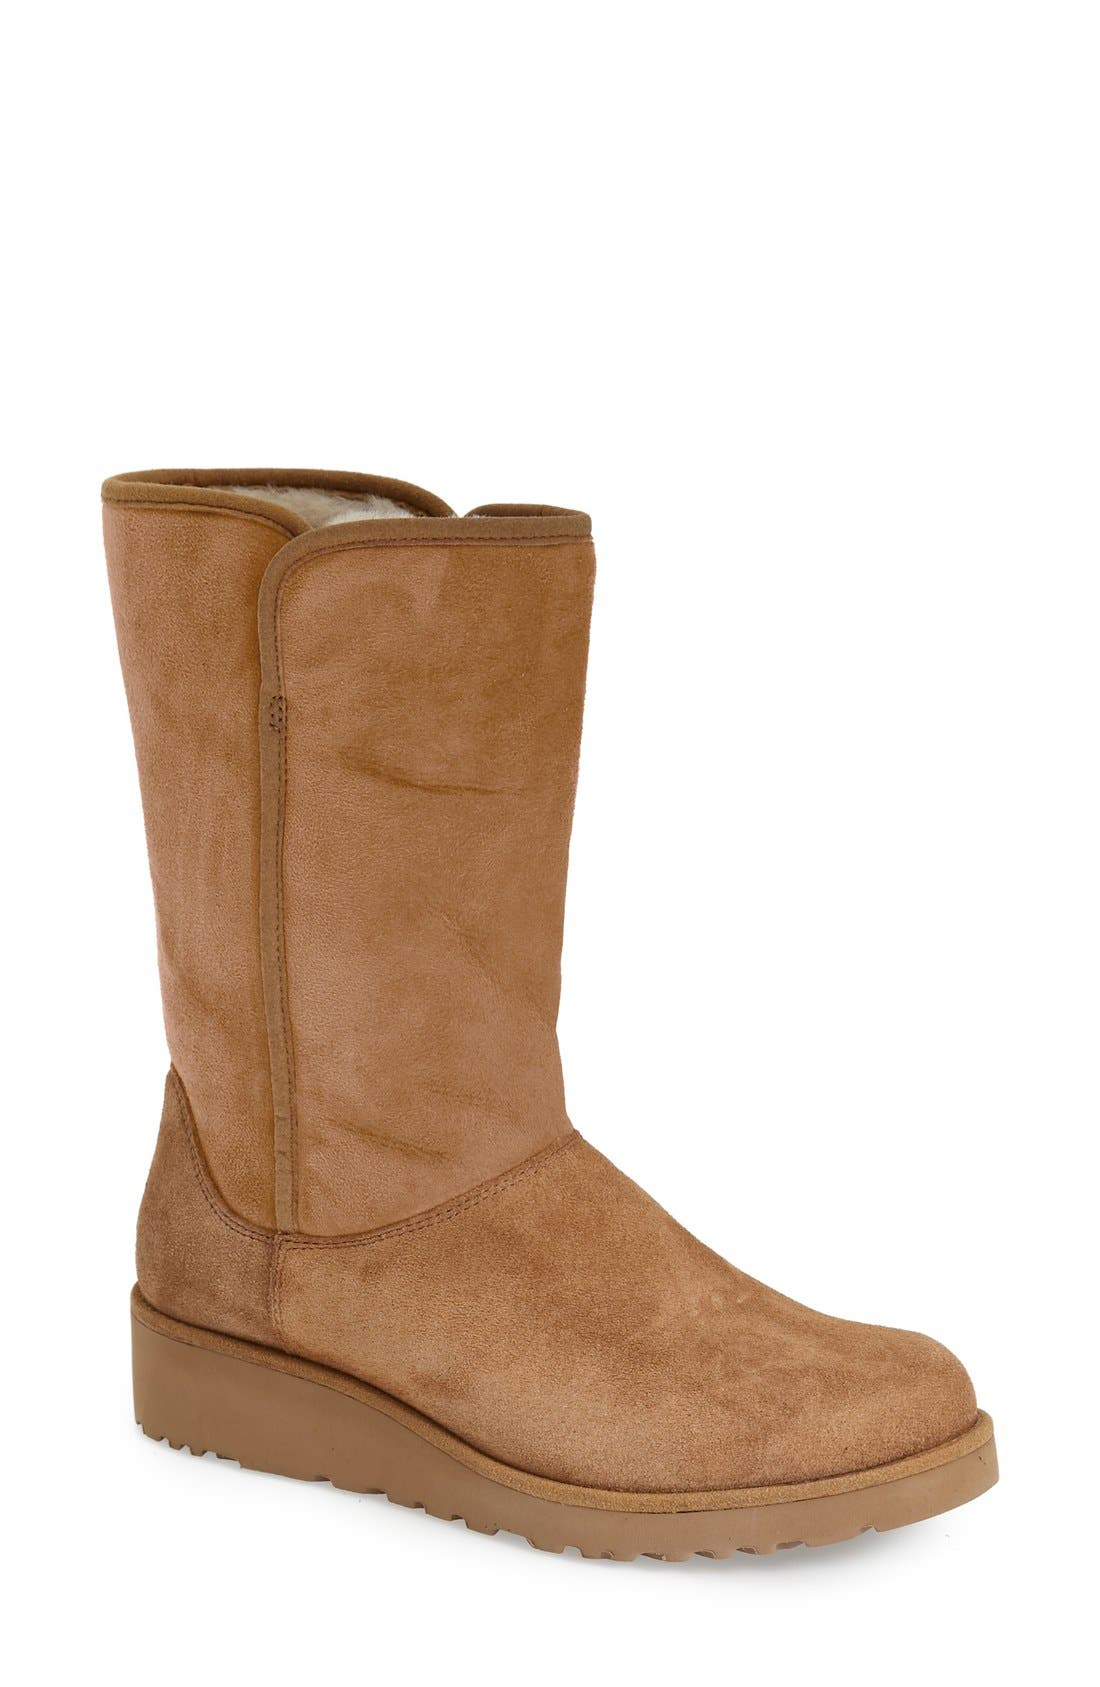 Womens Ugg Amie - Classic Slim(TM) Water Resistant Short Boot, Size 10 M - Brown